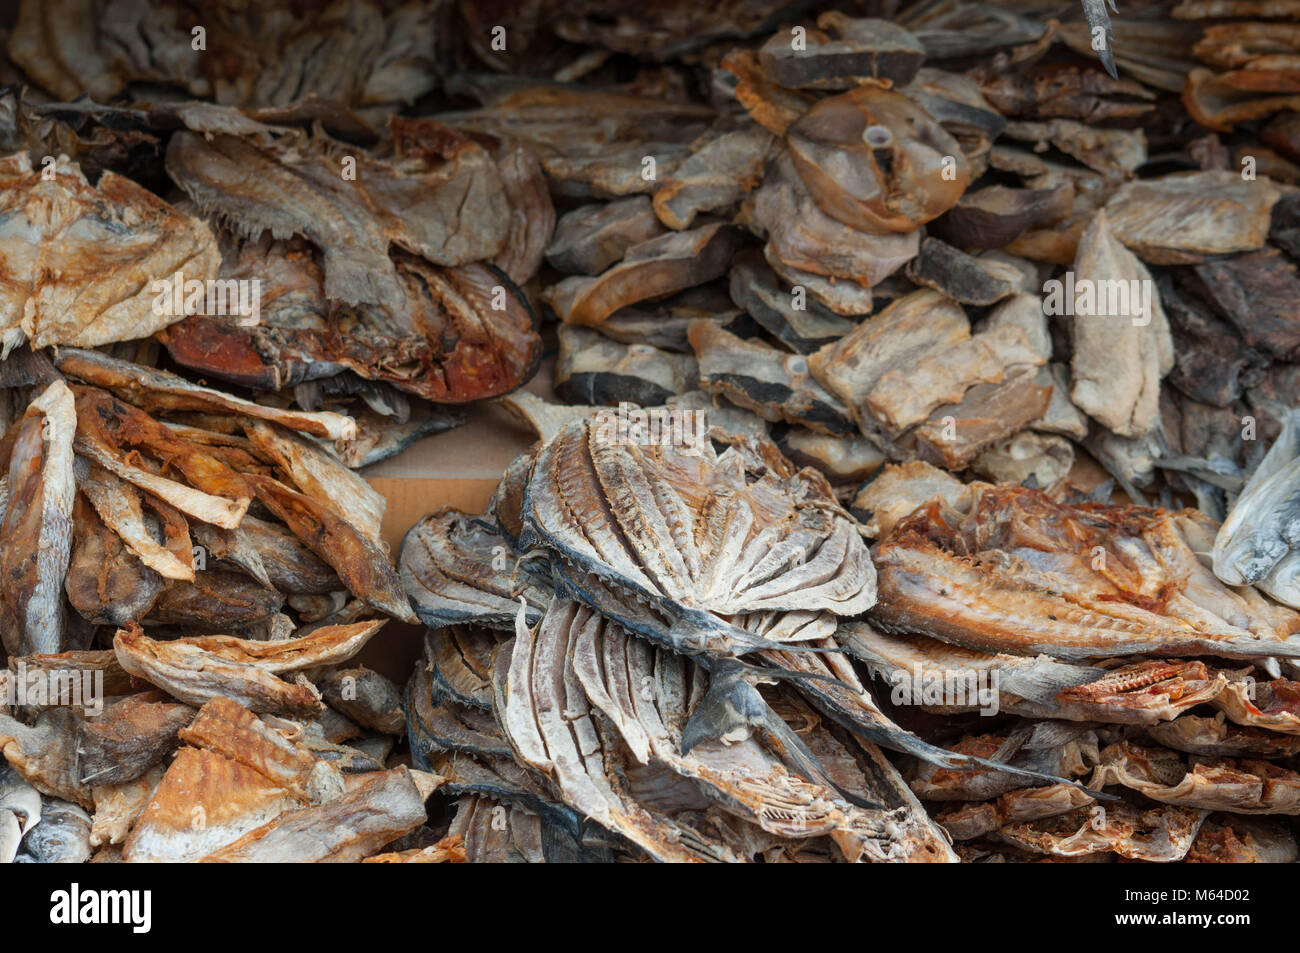 Dried fish market, asian salted fish - Stock Image